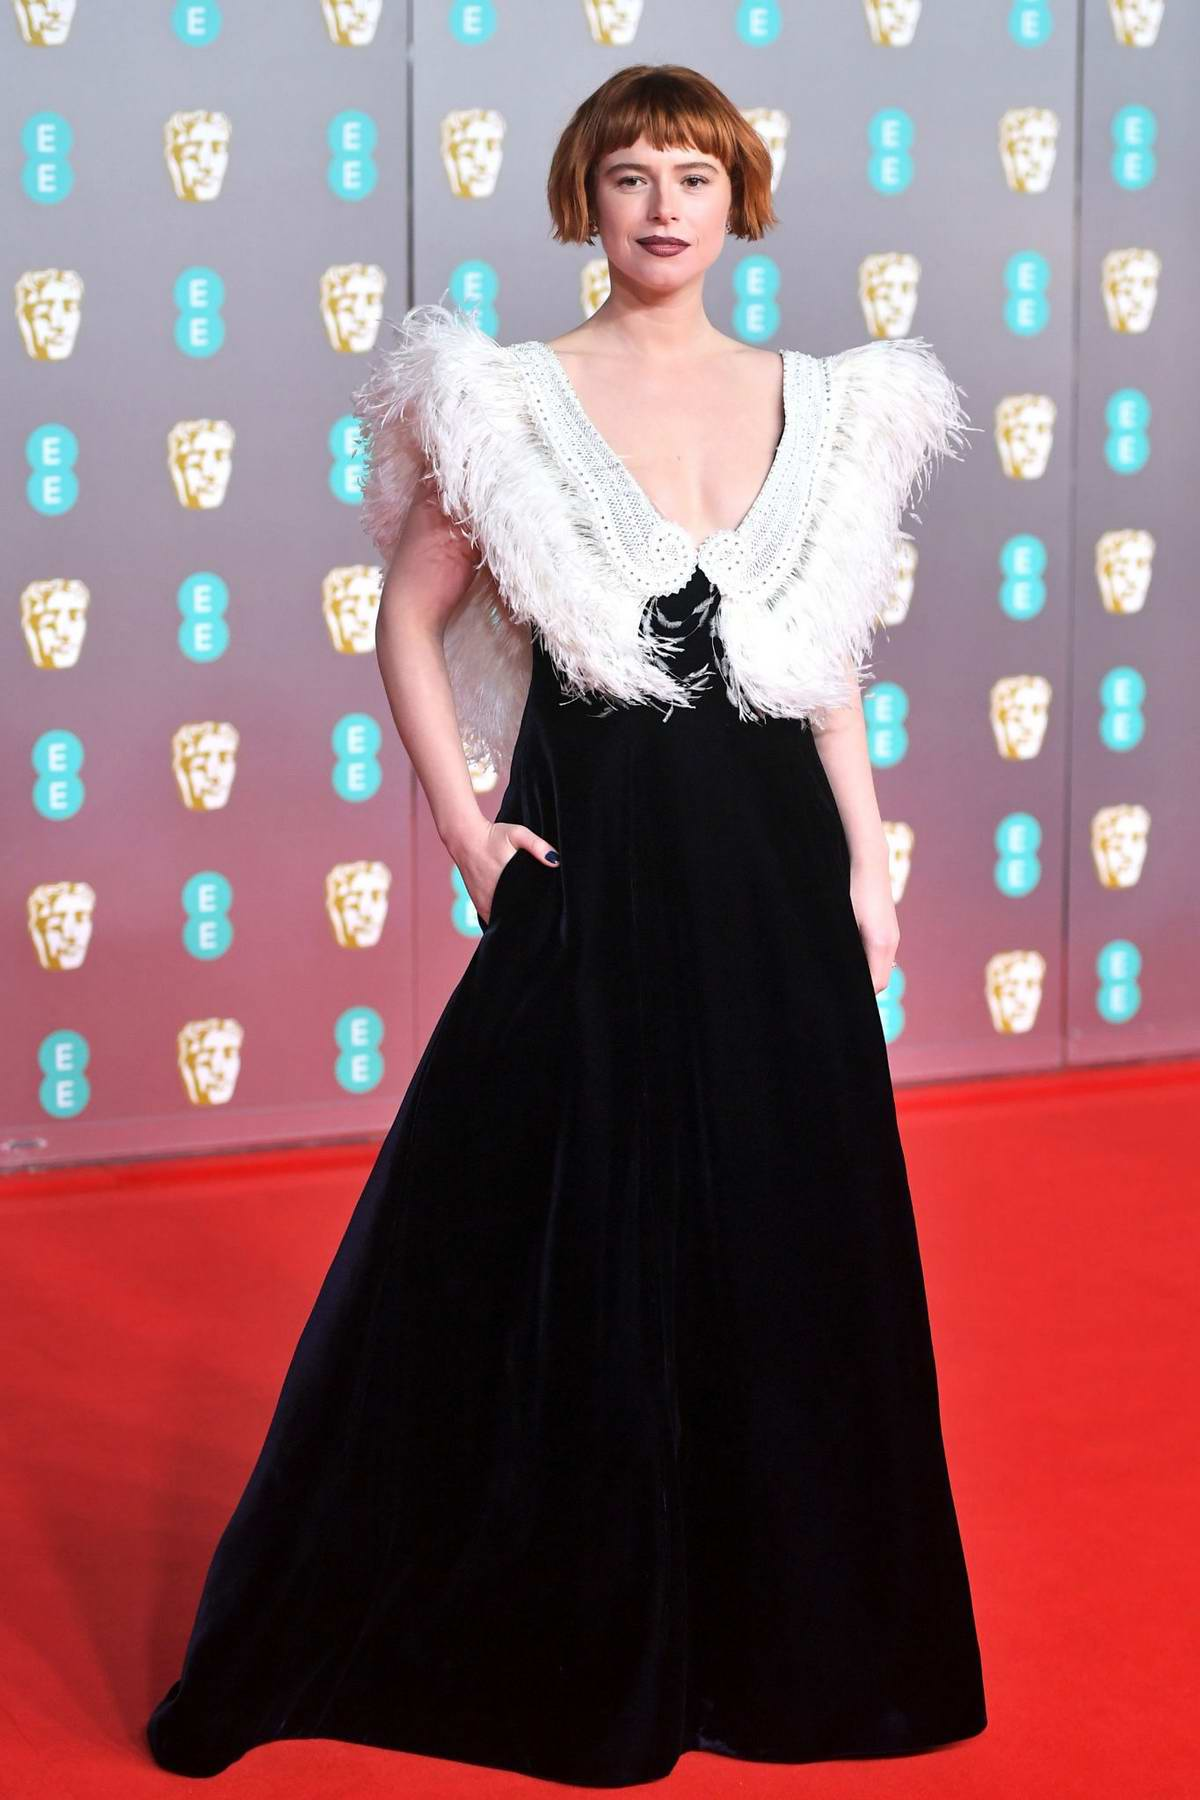 Jessie Buckley attends the 73rd EE British Academy Film Awards at Royal Albert Hall in London, UK